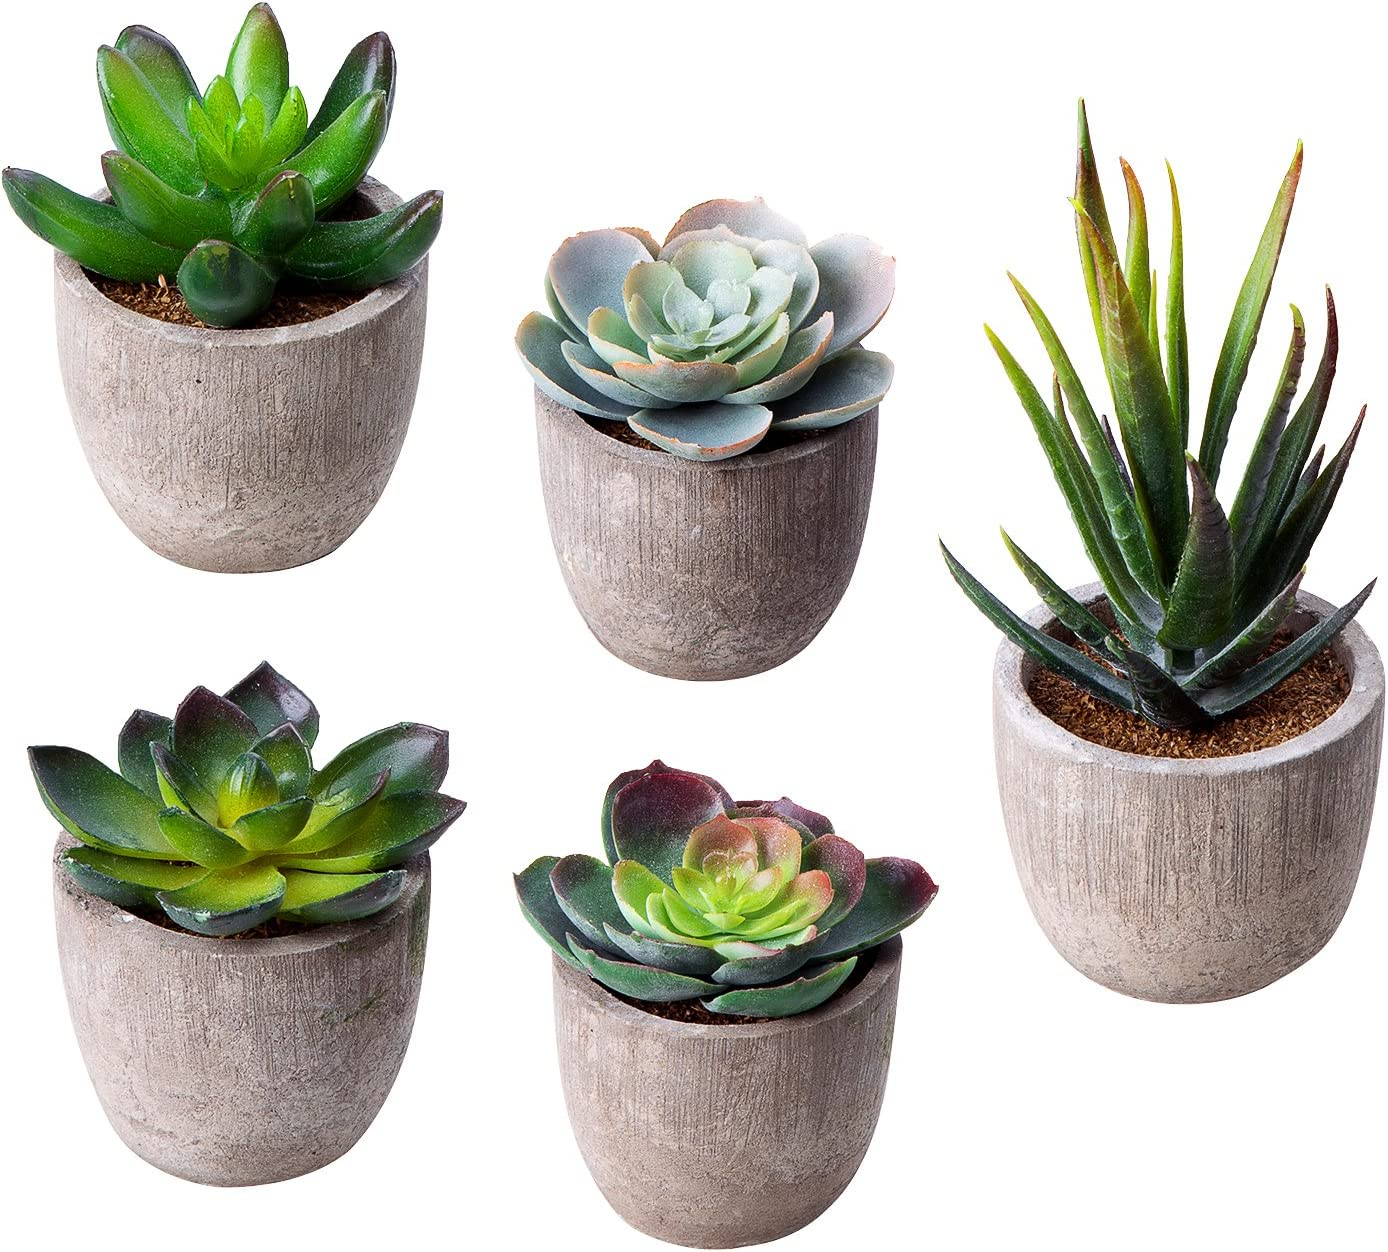 Amazon Com Moonla Artificial Succulent Plants Assorted Decorative Faux Succulent Potted Fake Cactus Cacti Plants With Gray Pots Set Of 5 Home Kitchen